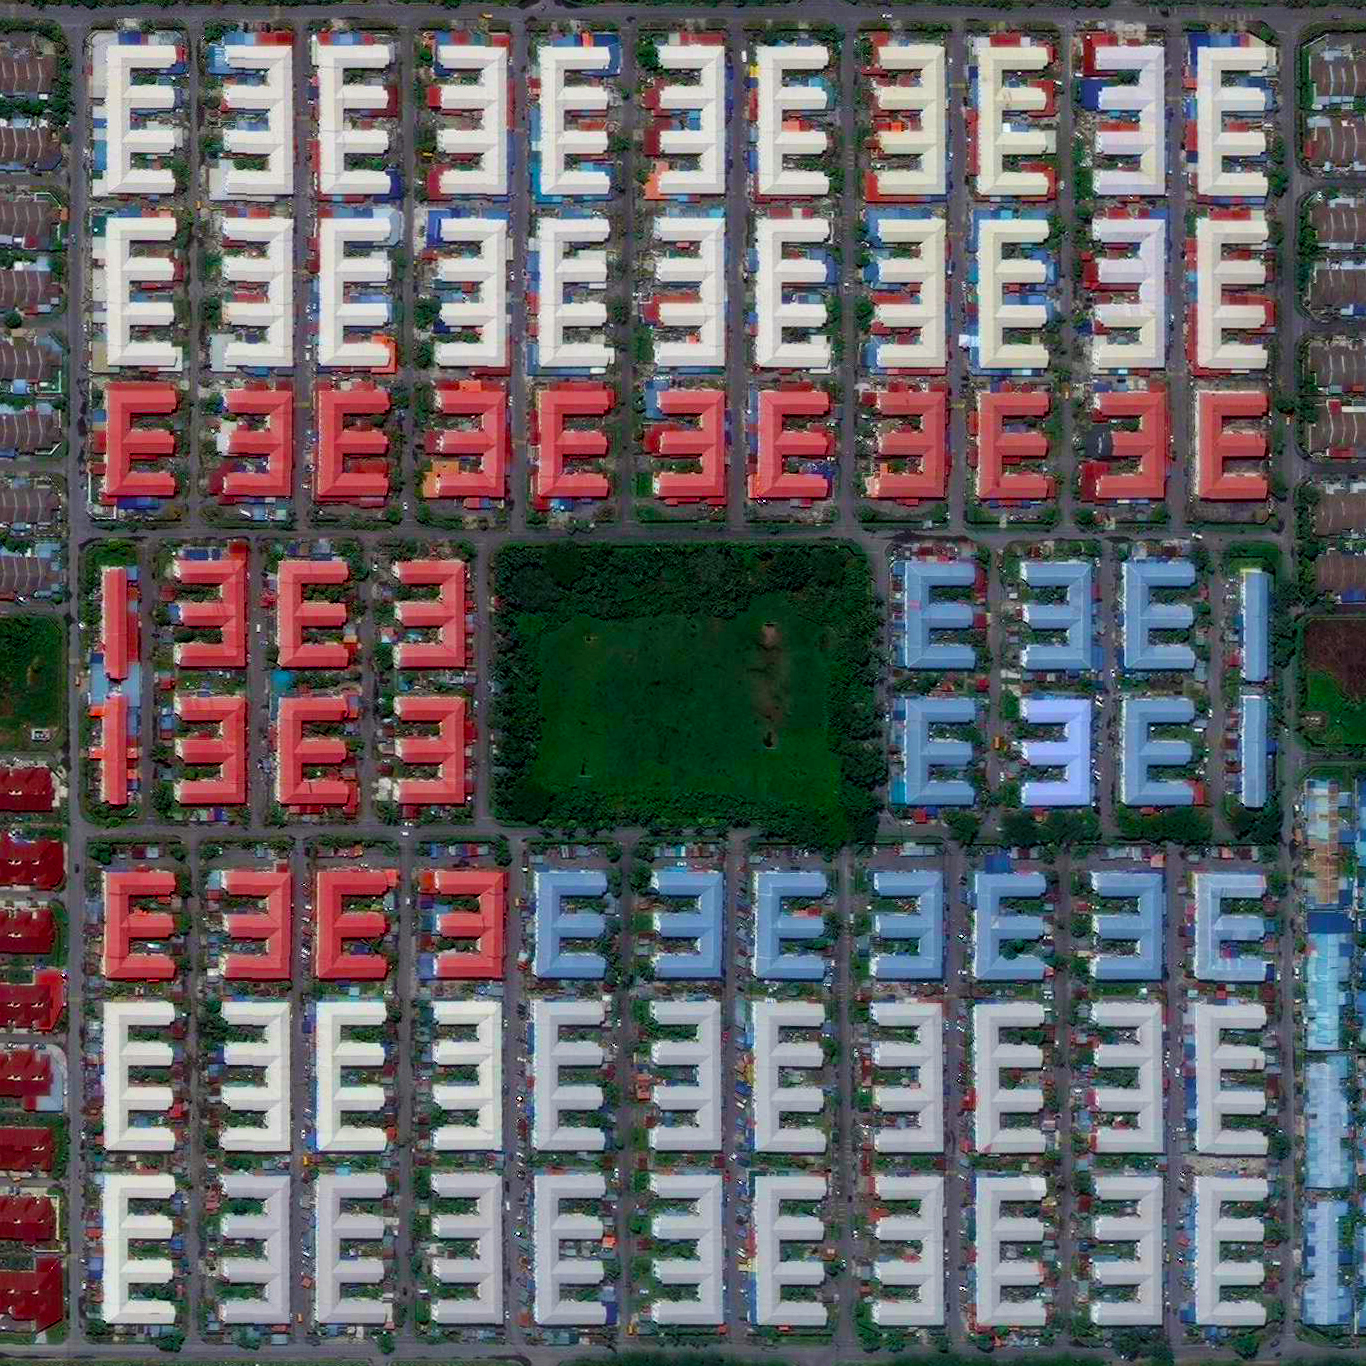 9/10/2015  Residential development  Miri, Malaysia  4.469321737°, 114.036864358°    Residential buildings are seen in Miri, Malaysia. In the decade after the year 2000, the population of the city increased approximately 40% and is currently home to more than 234,000 residents. Miri is located in the Sarawak region, one of the most popular ecotourism destinations in Malaysia and also the birthplace of the country's petroleum industry.